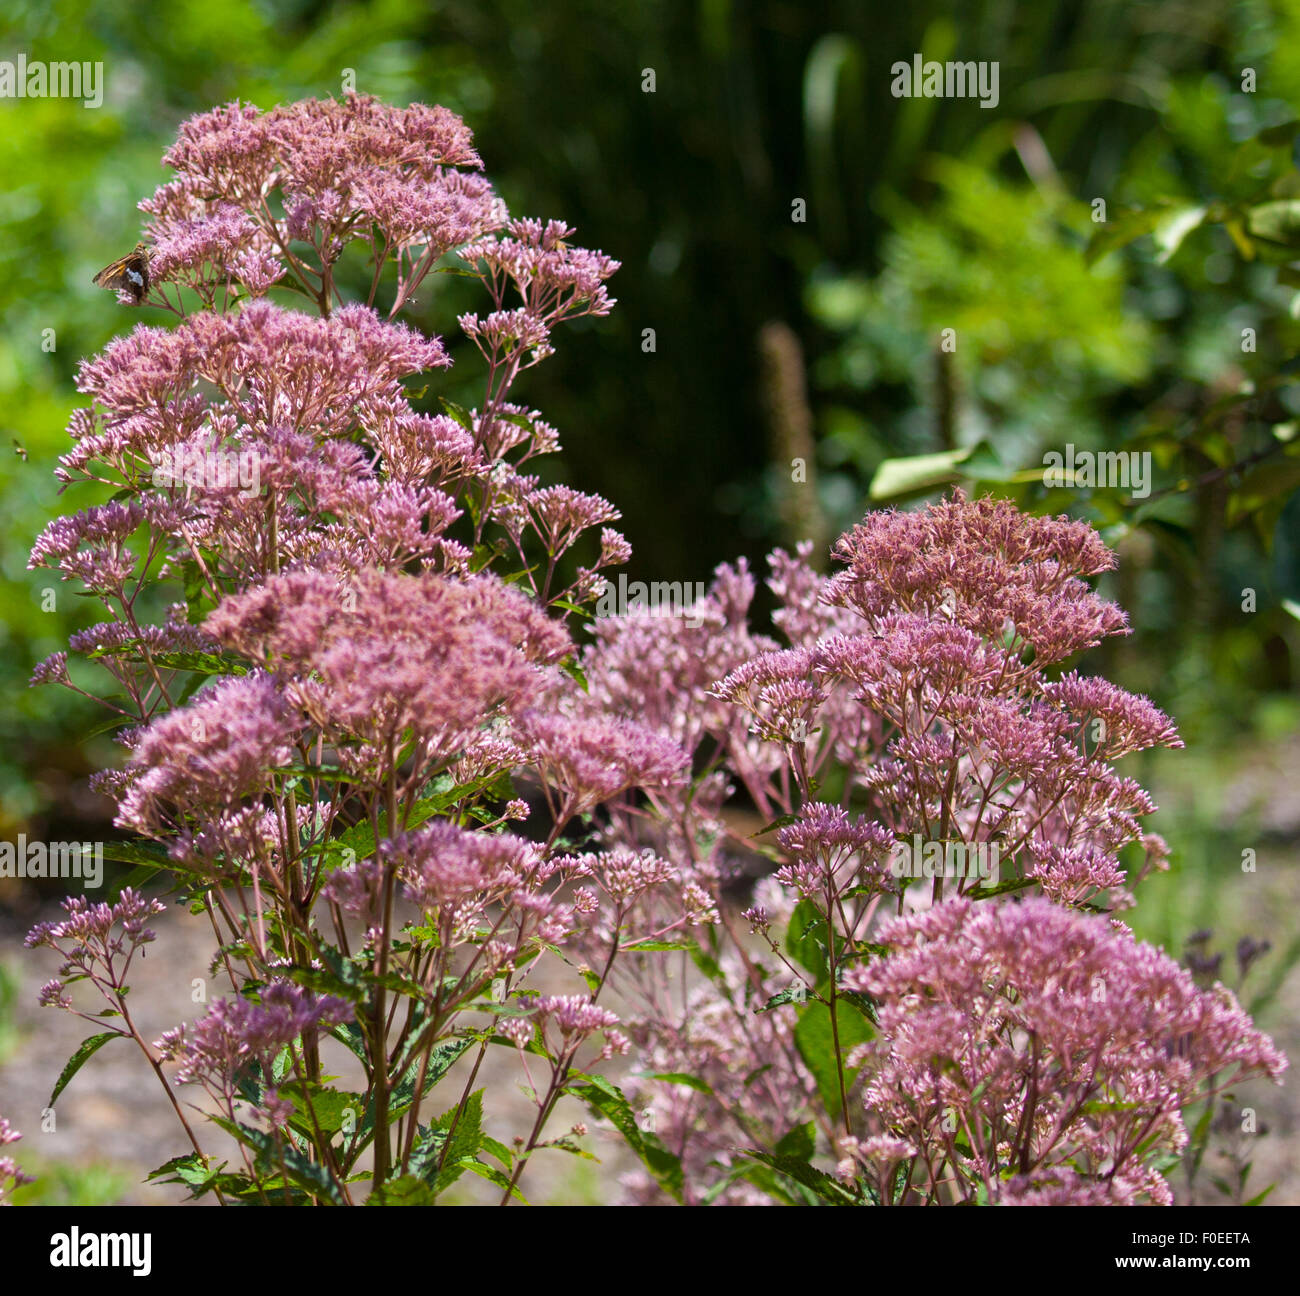 Joe Pye Weed (Eutrochium purpureum) blooming in a garden - Stock Image